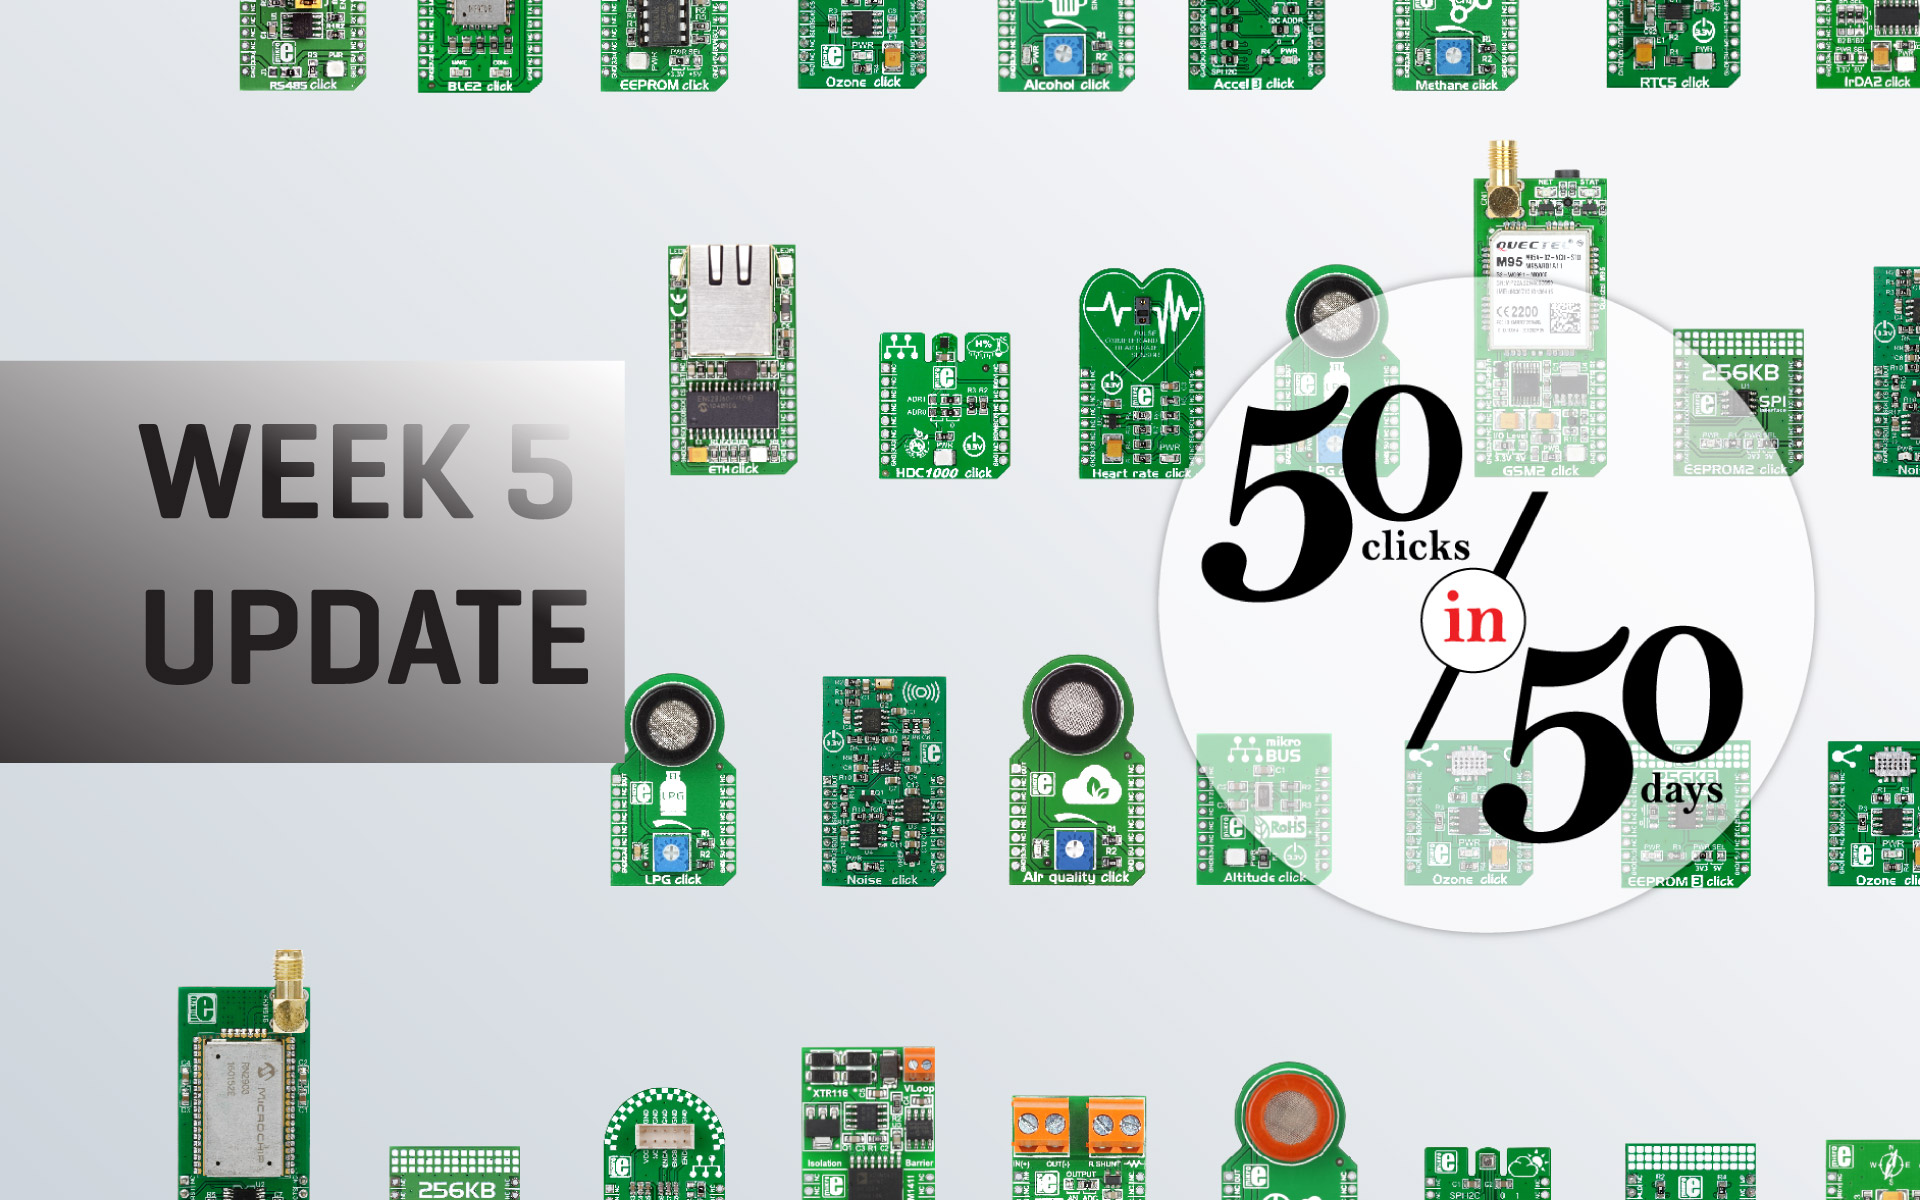 Week 5 update — 50 clicks in 50 days with Microchip